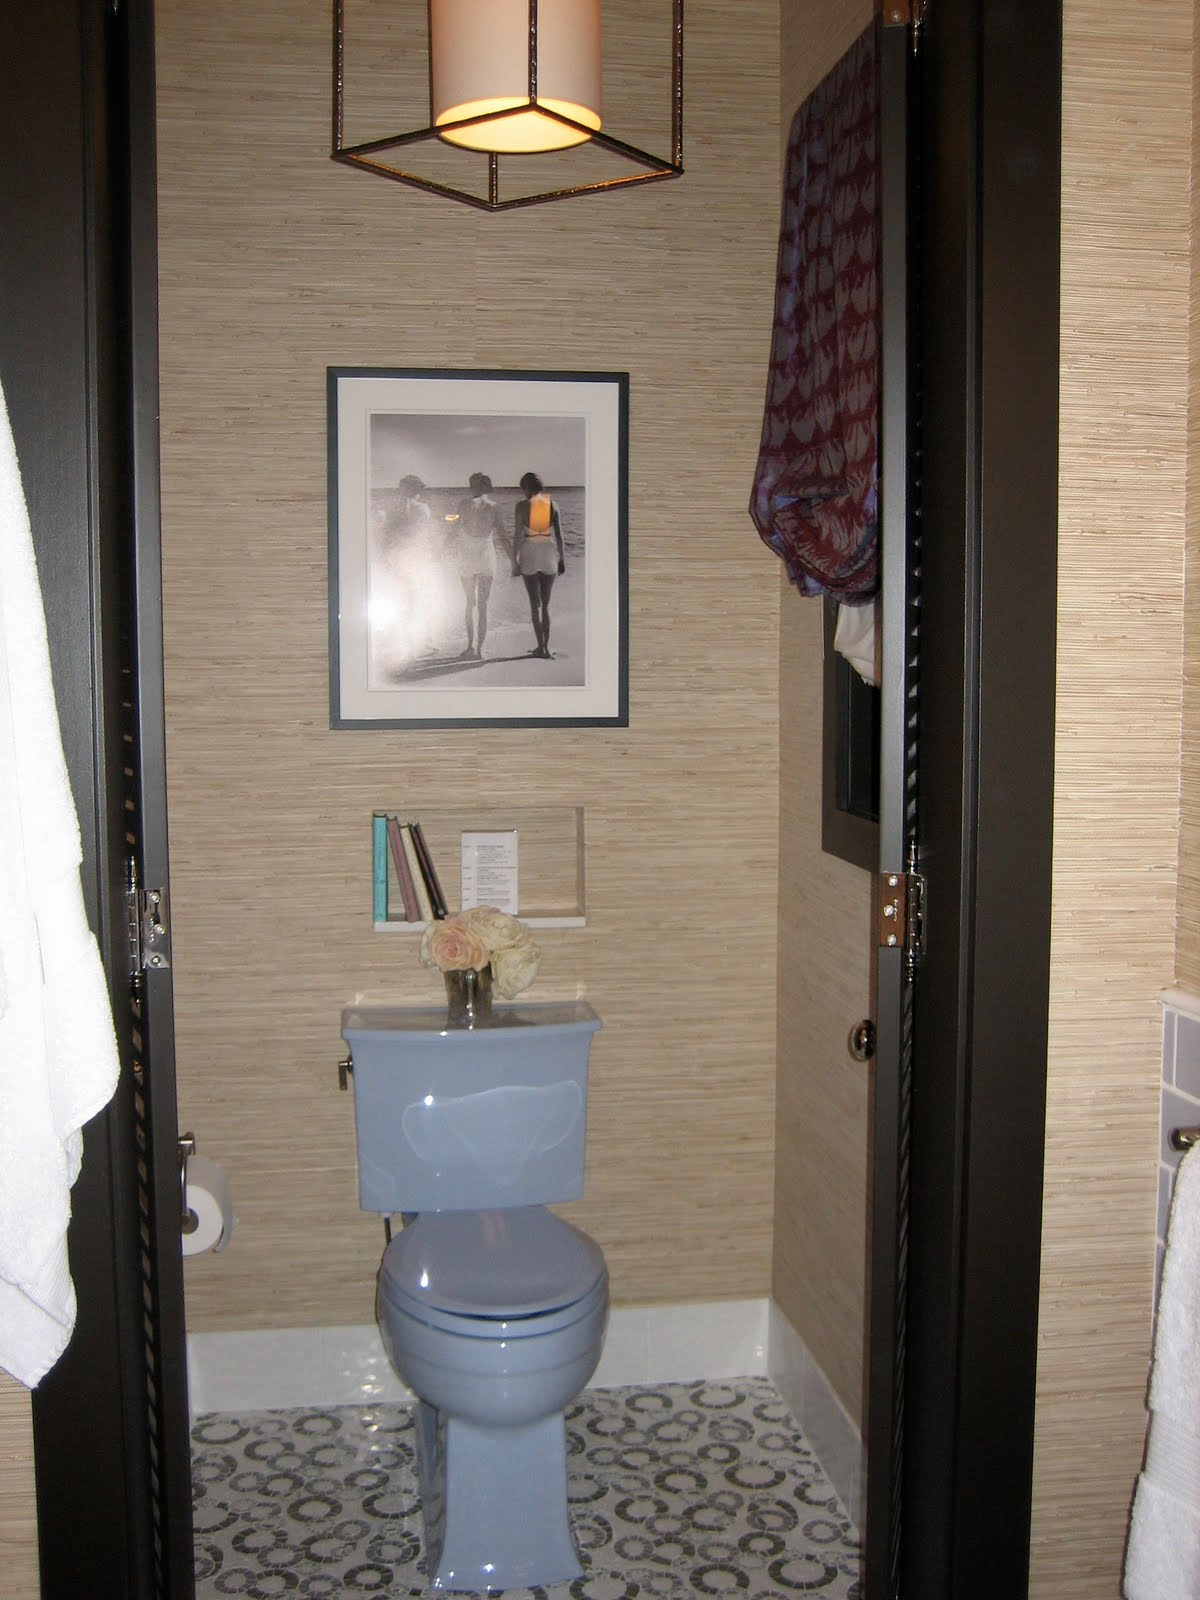 Toilet design toilet design room design ideas room for Toilet design ideas